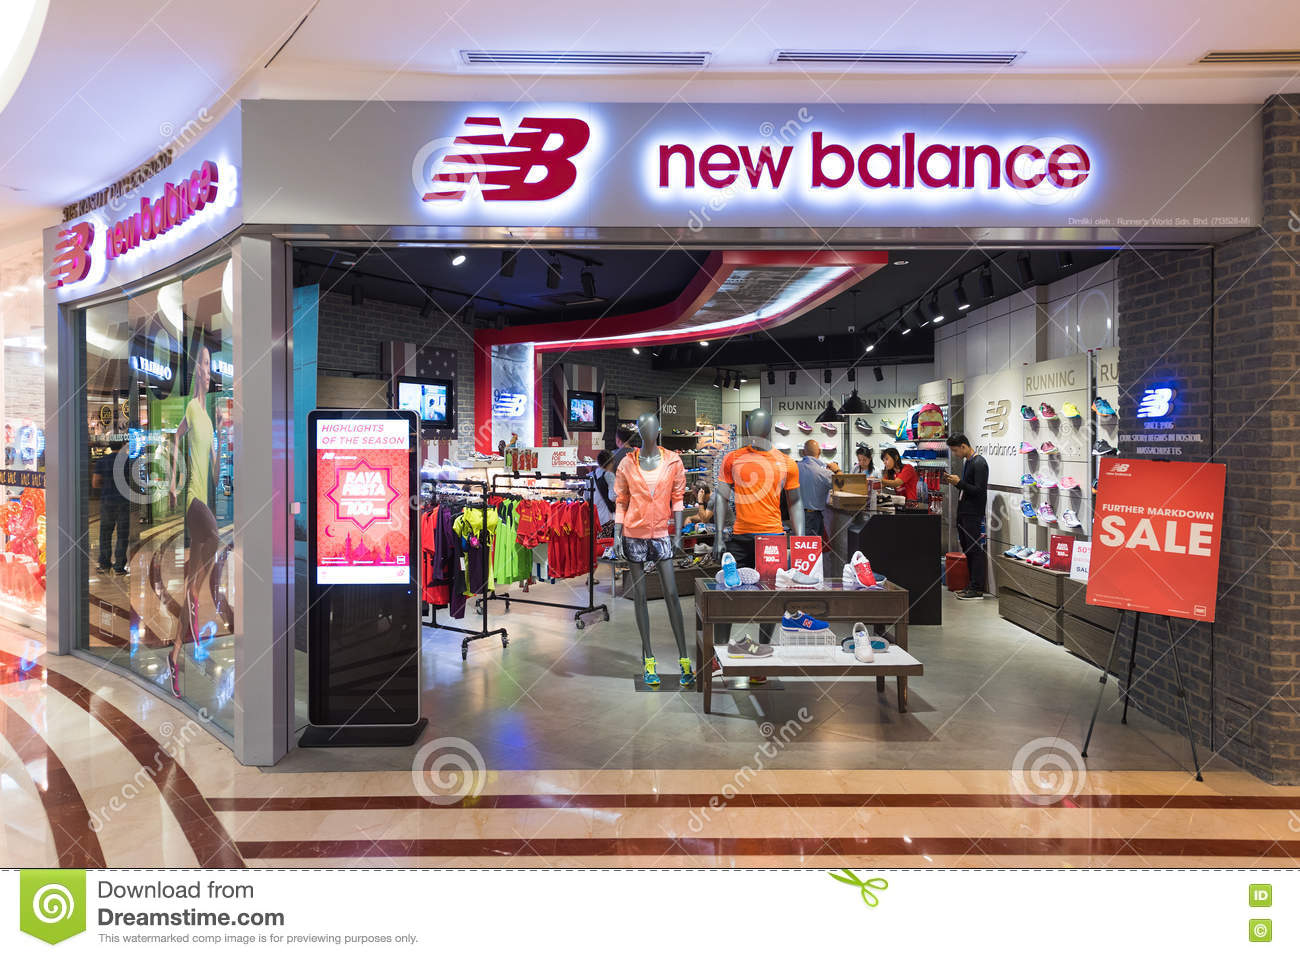 New Balance One of the leading performance-running brands in the world, New Balance offers a range of classic vintage-style sneakers such as the , and the in a kaleidoscope of colors.